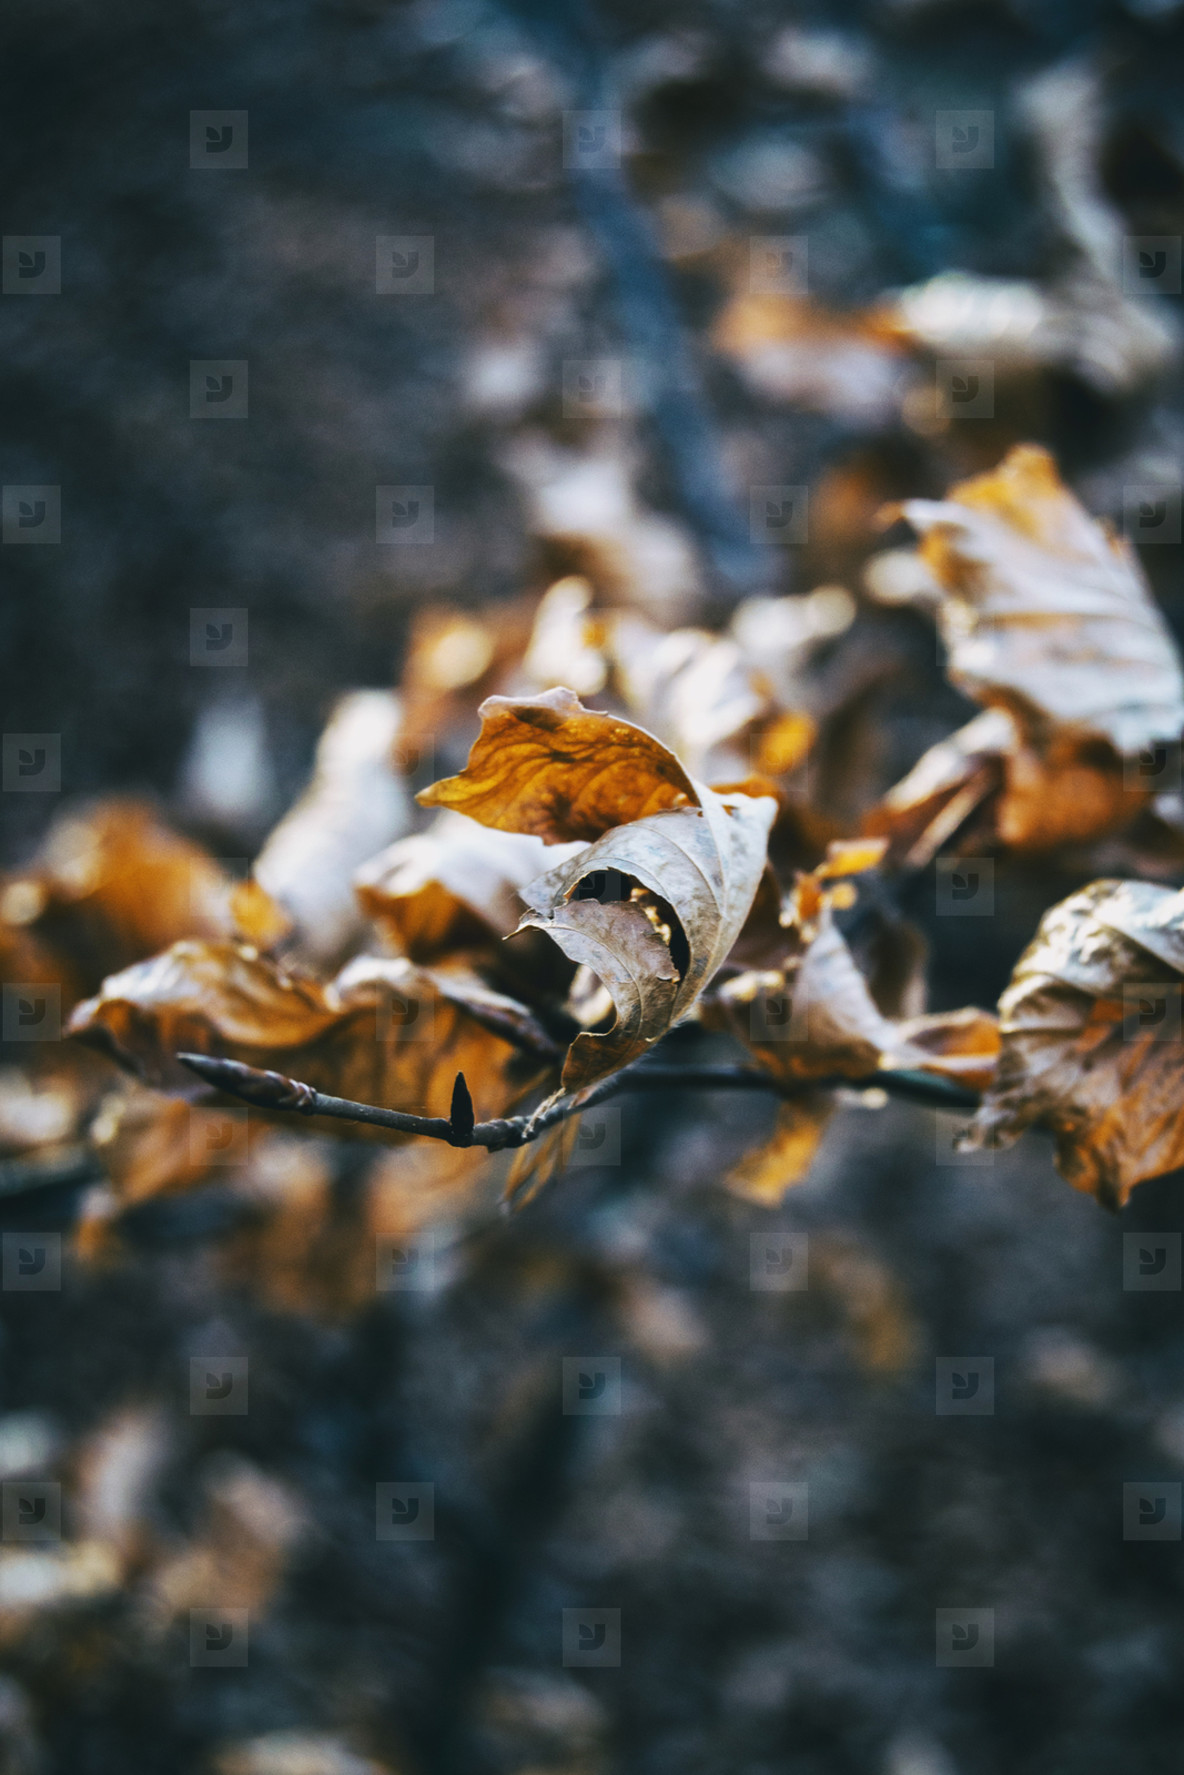 dry leaves seen from close up in the autumn   winter season